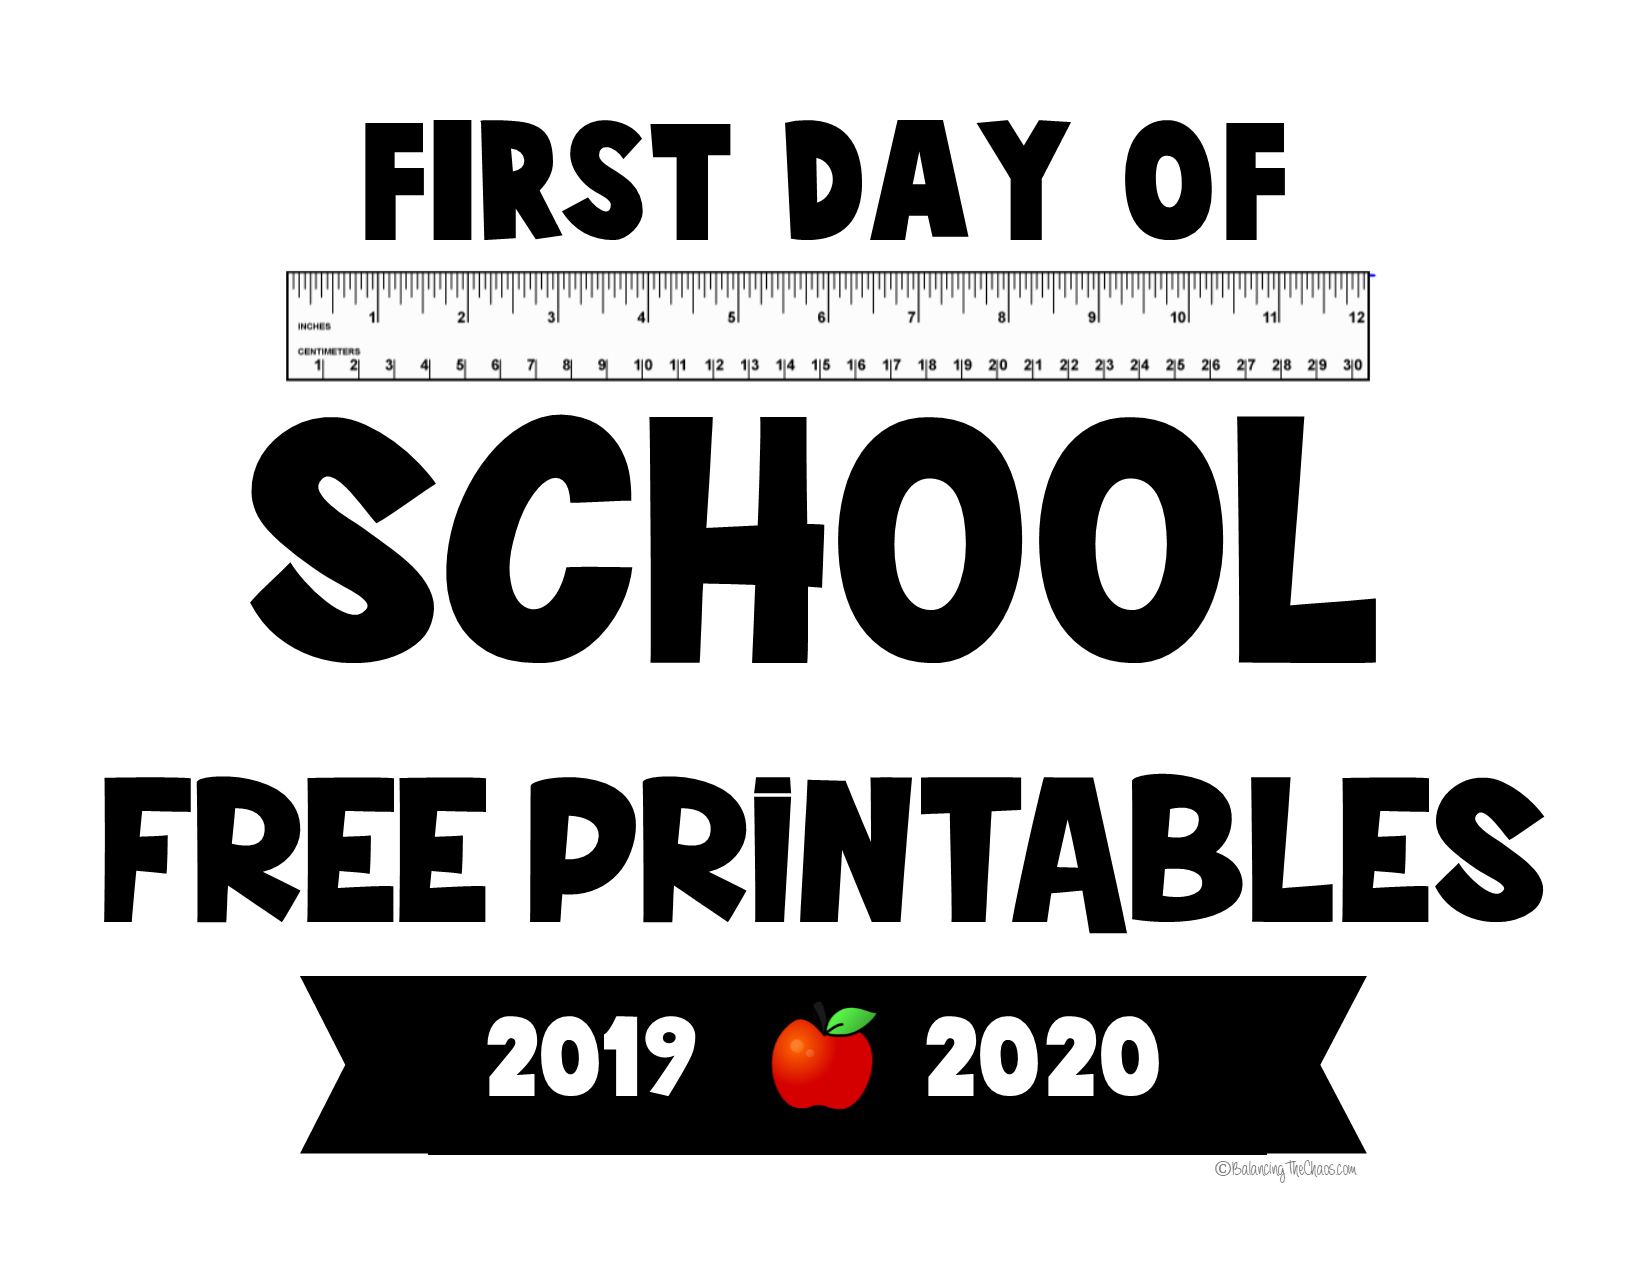 Free Printable: 2019 - 2020 First Day Of School Signs